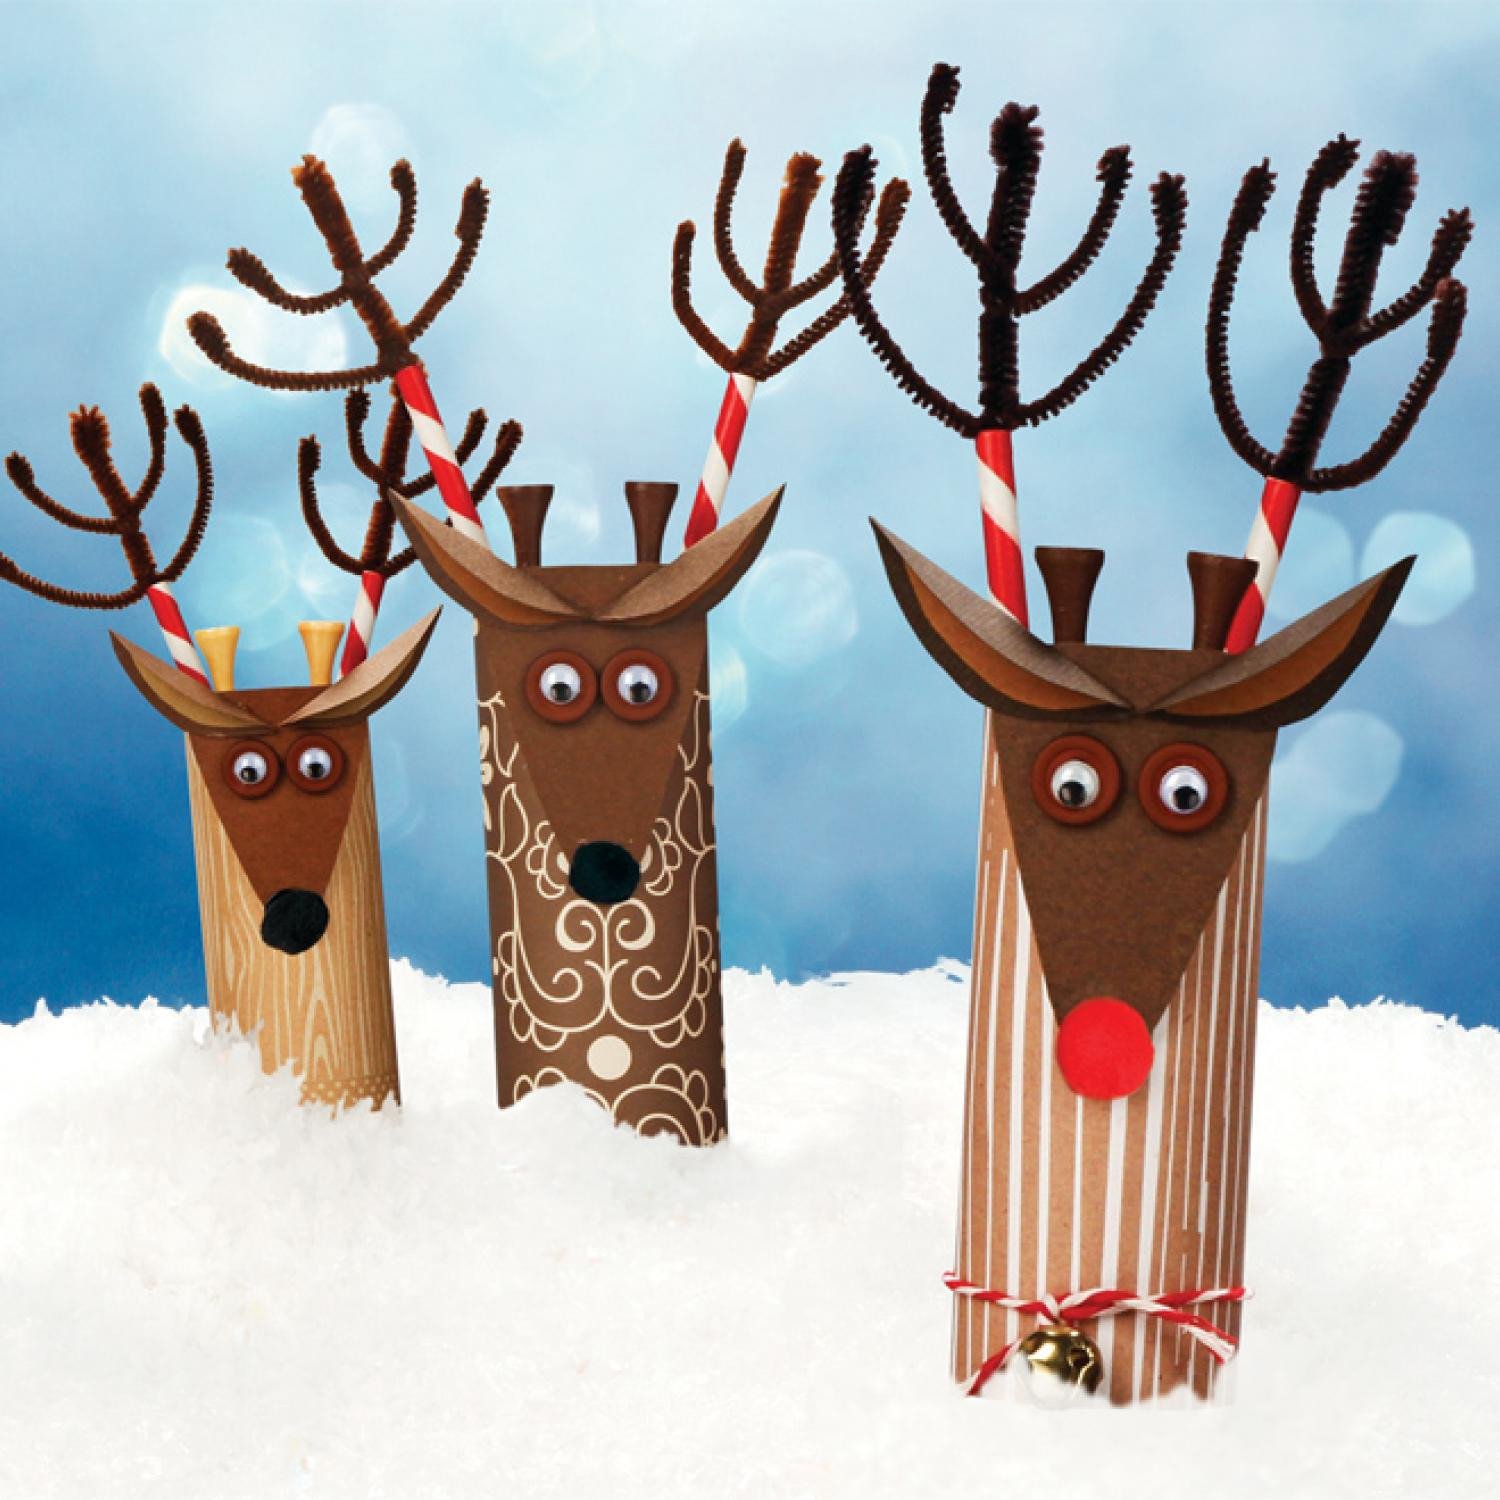 Christmas Arts And Craft Ideas For Toddlers  Easy Christmas Crafts and Activities for Kids